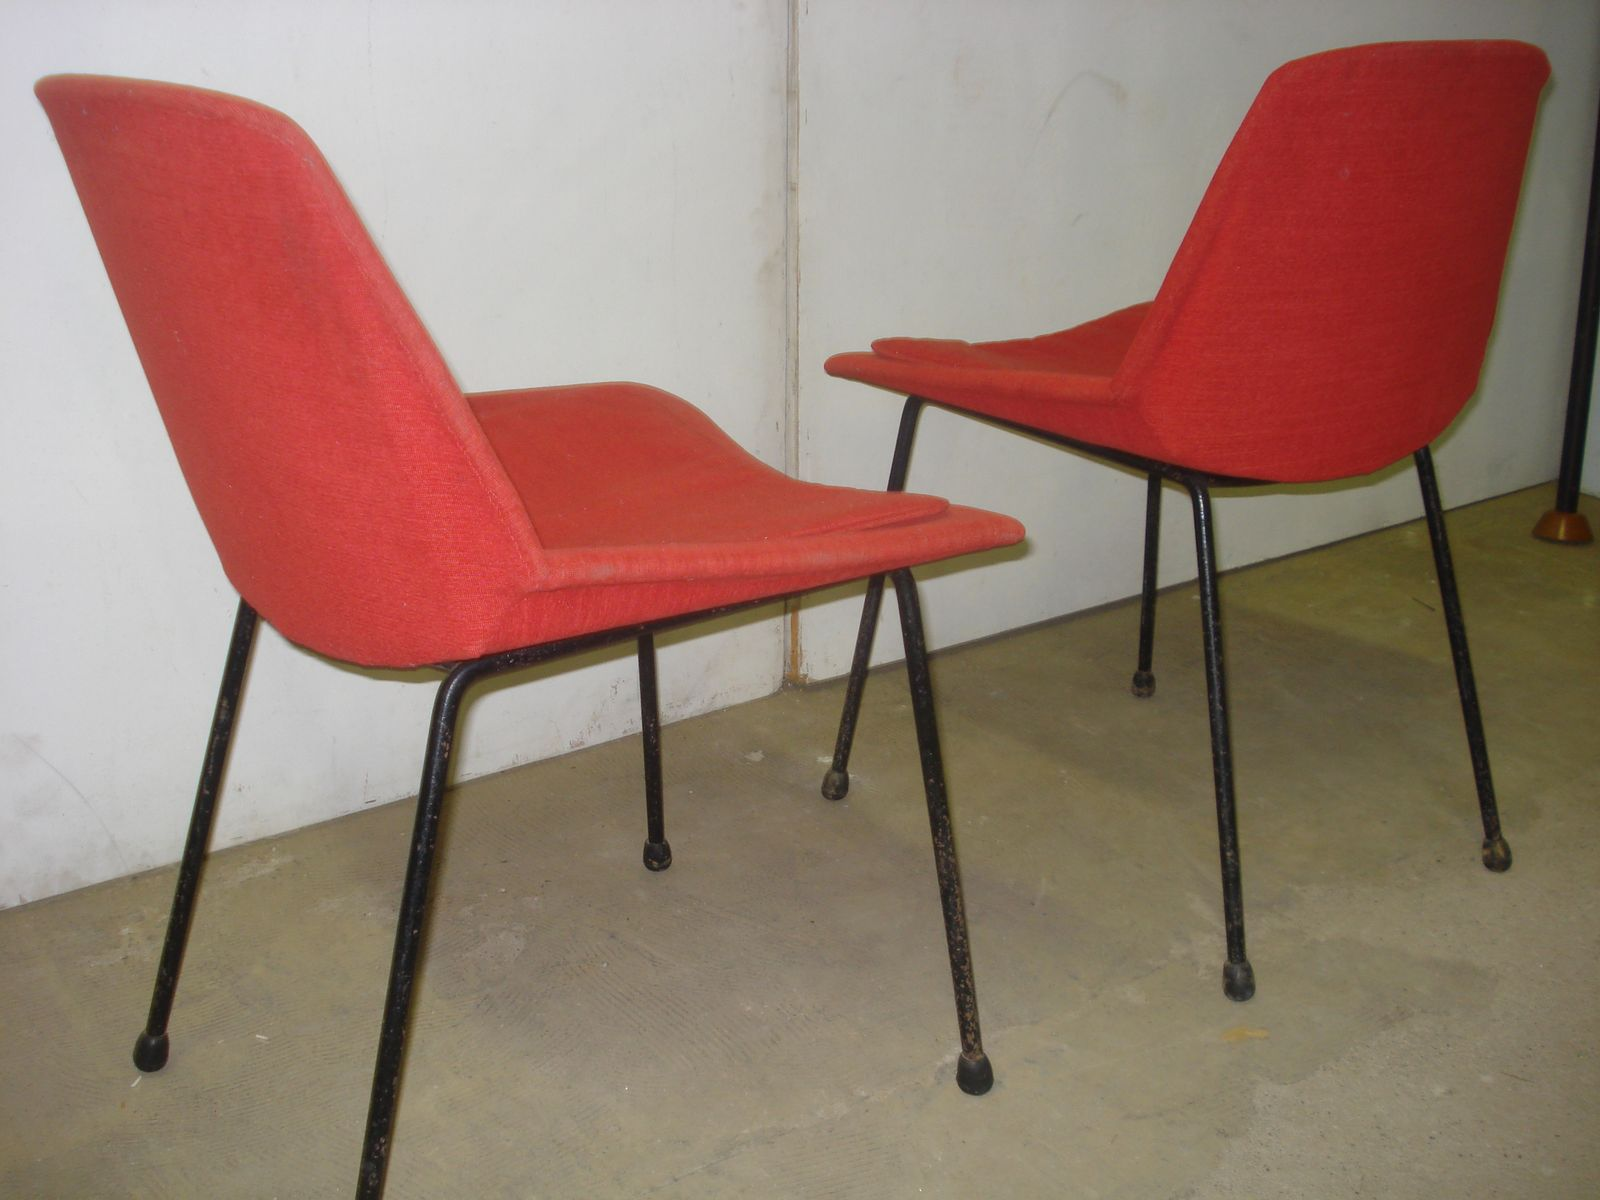 Red Chairs from Saporiti 1950s Set of 2 for sale at Pamono